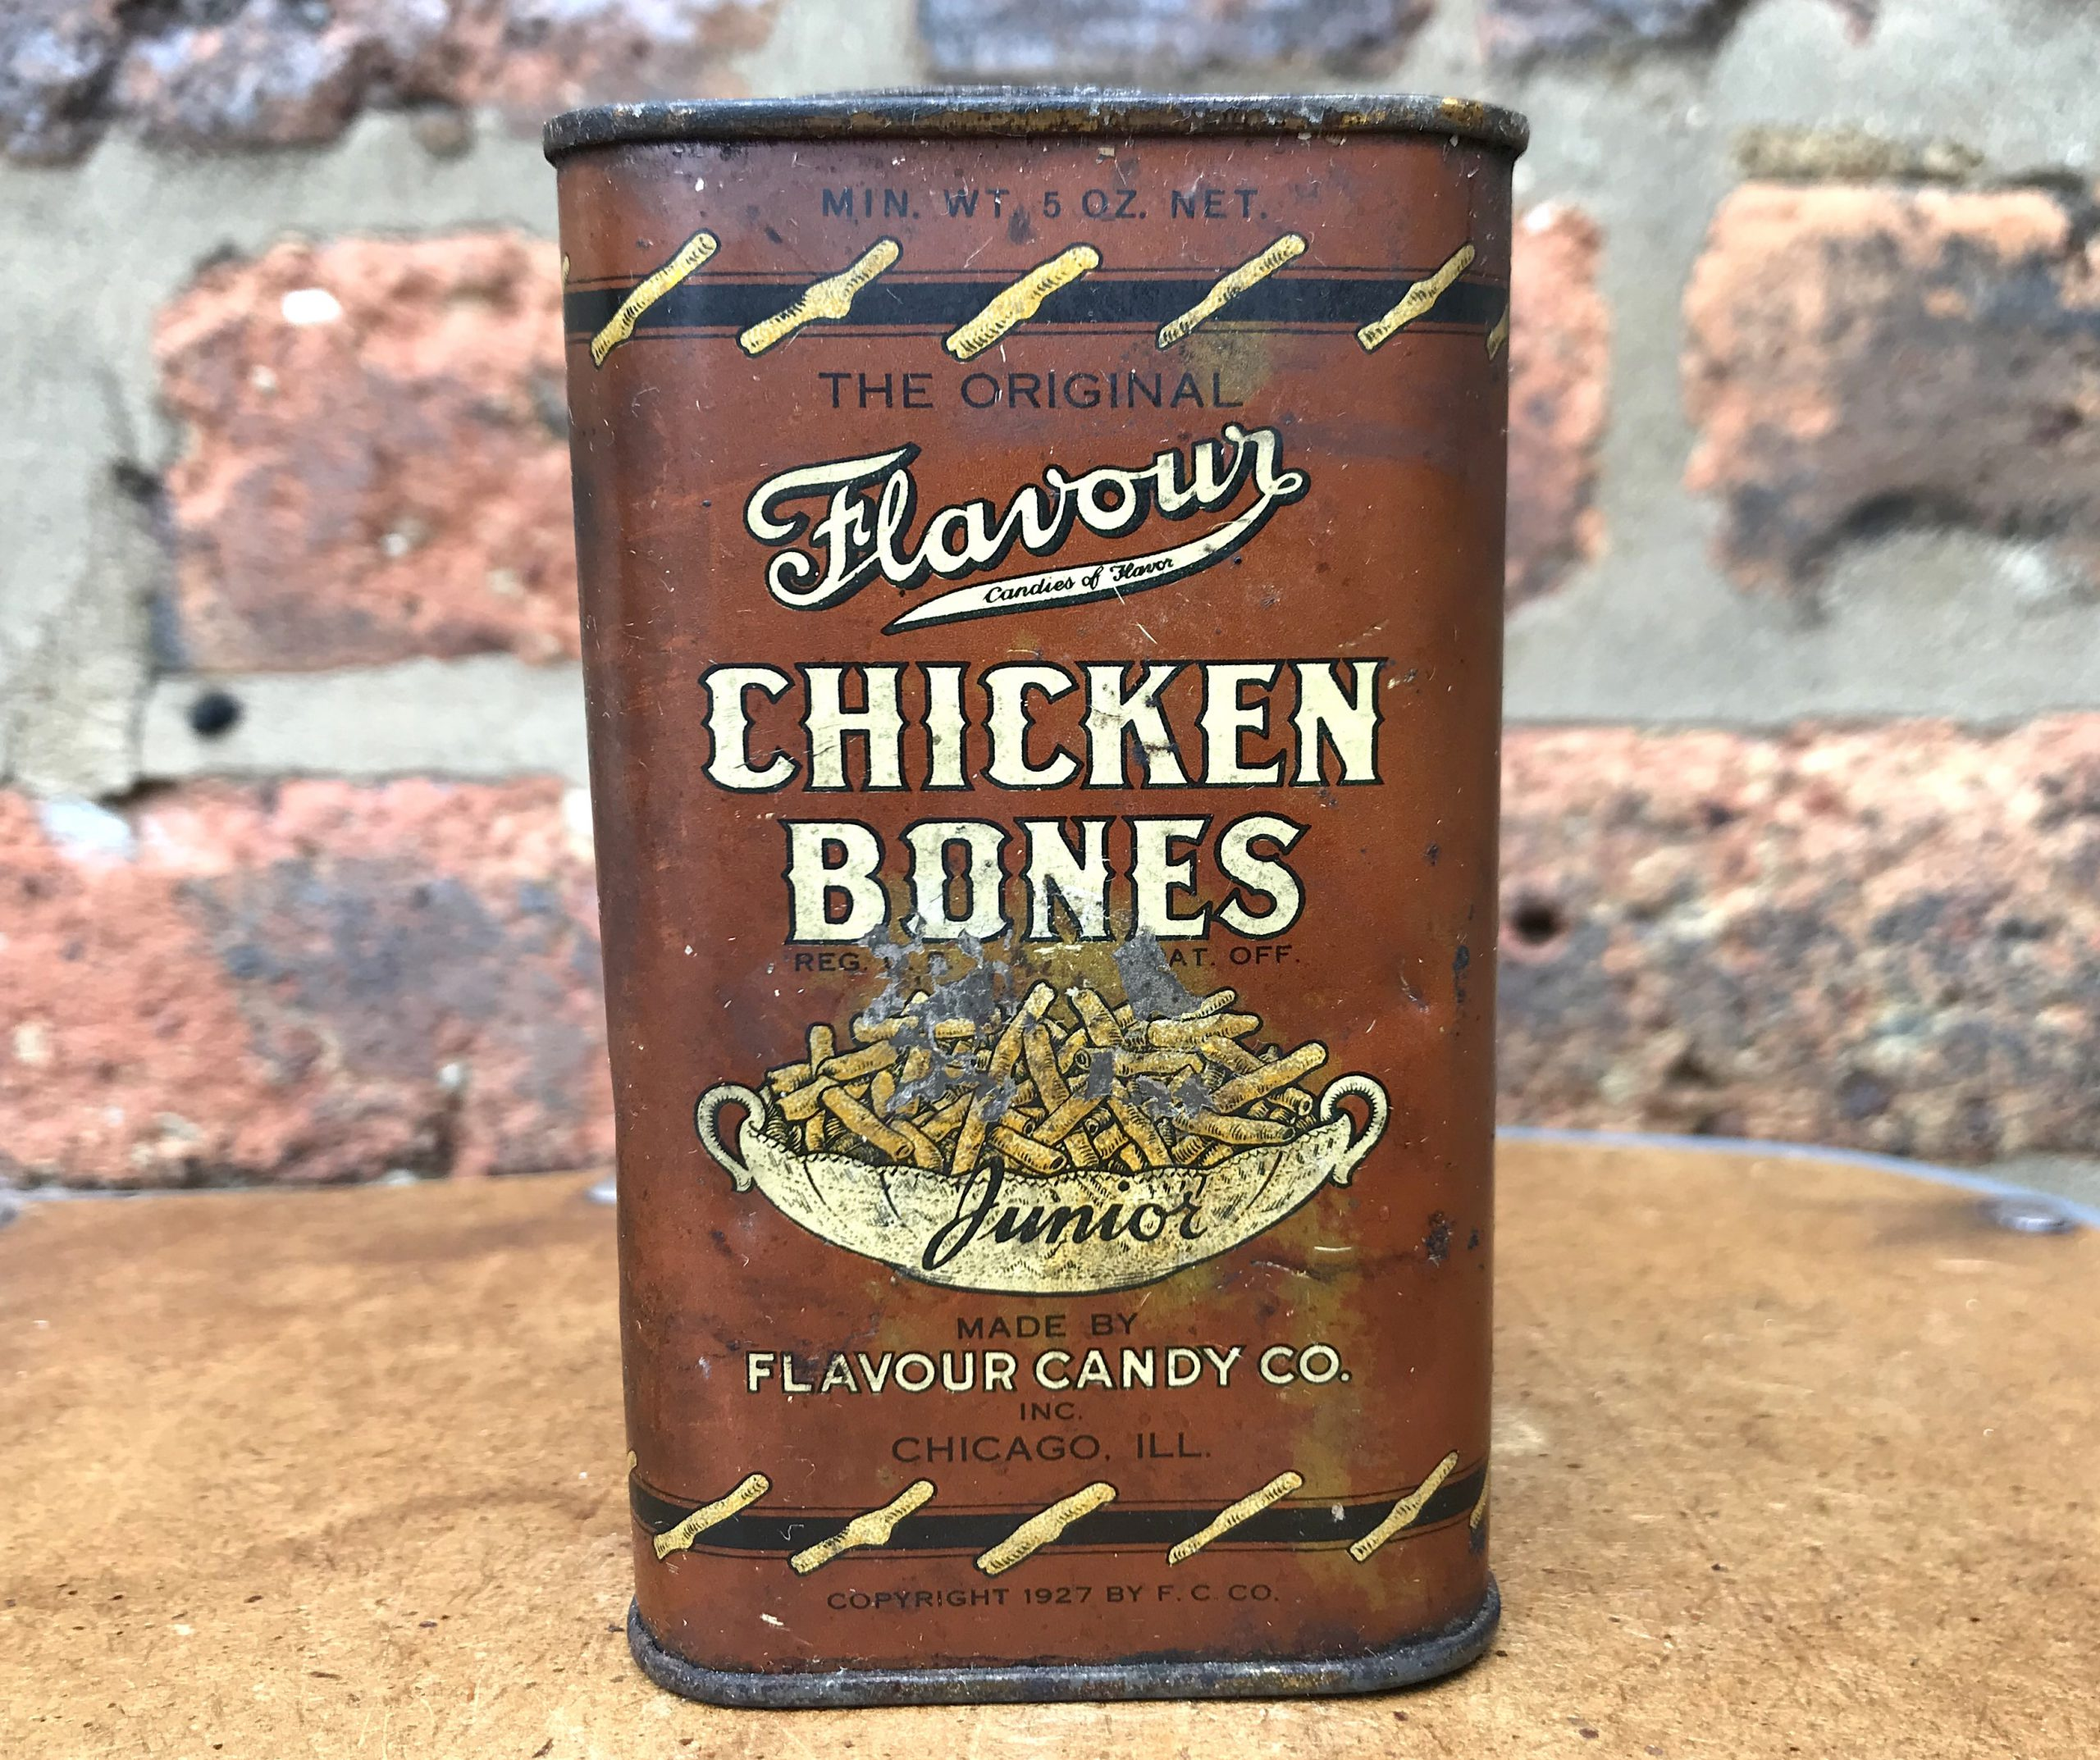 Flavour Candy Co. History - Chicken Bones